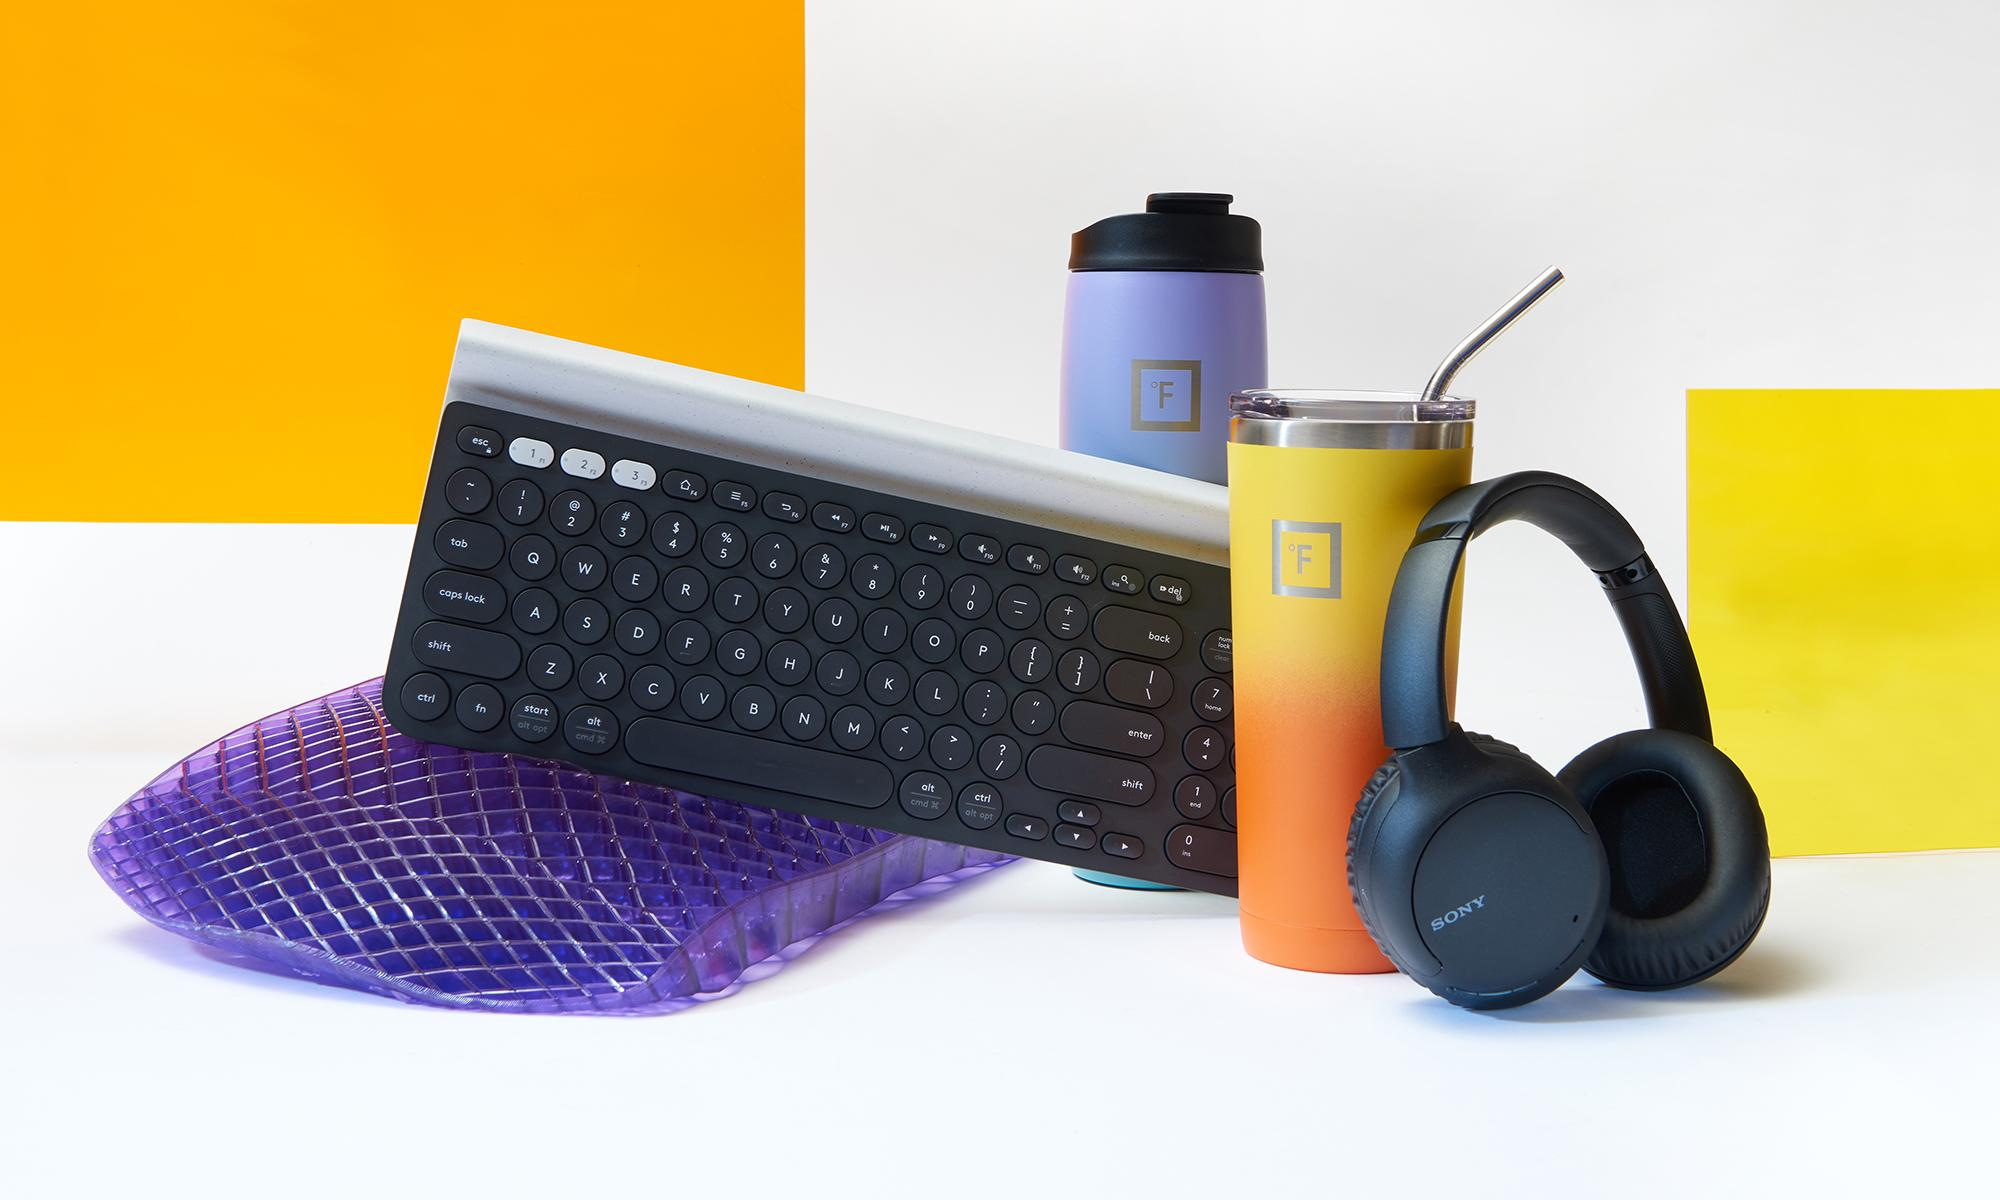 A collection of products from the Engadget 2021 Back to School gift guide.